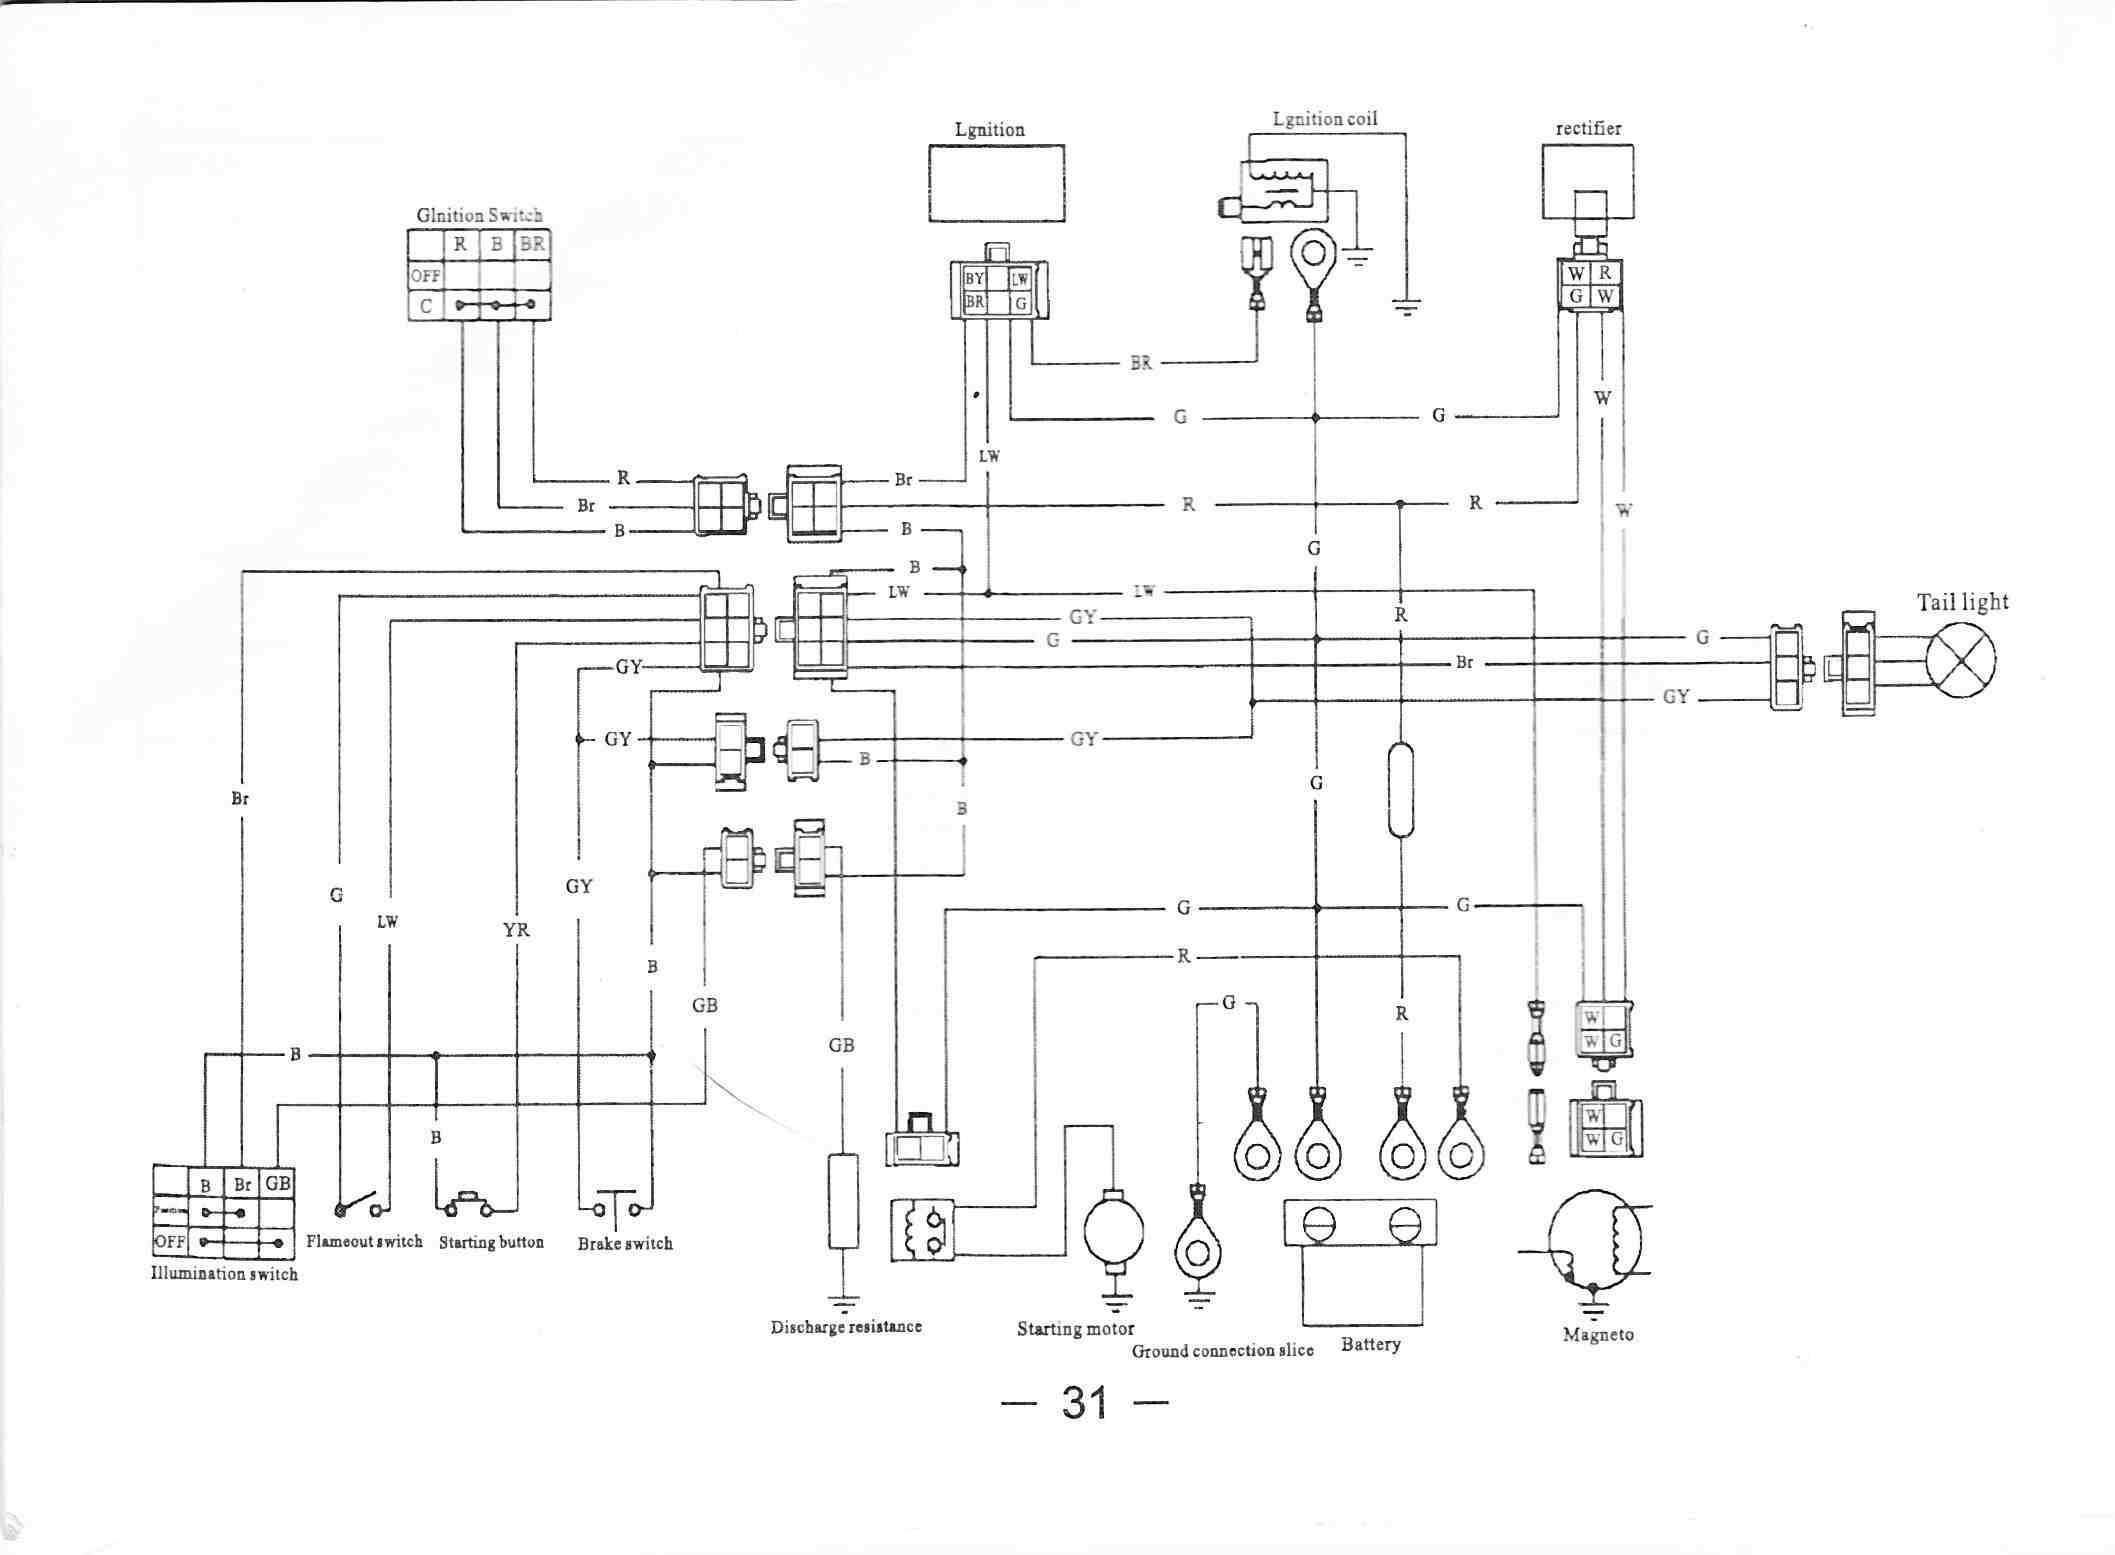 Case Ih 85 Series Wiring Diagram Services International Tractor 1680 Wire Center U2022 Rh 66 42 74 58 5140 Farmall